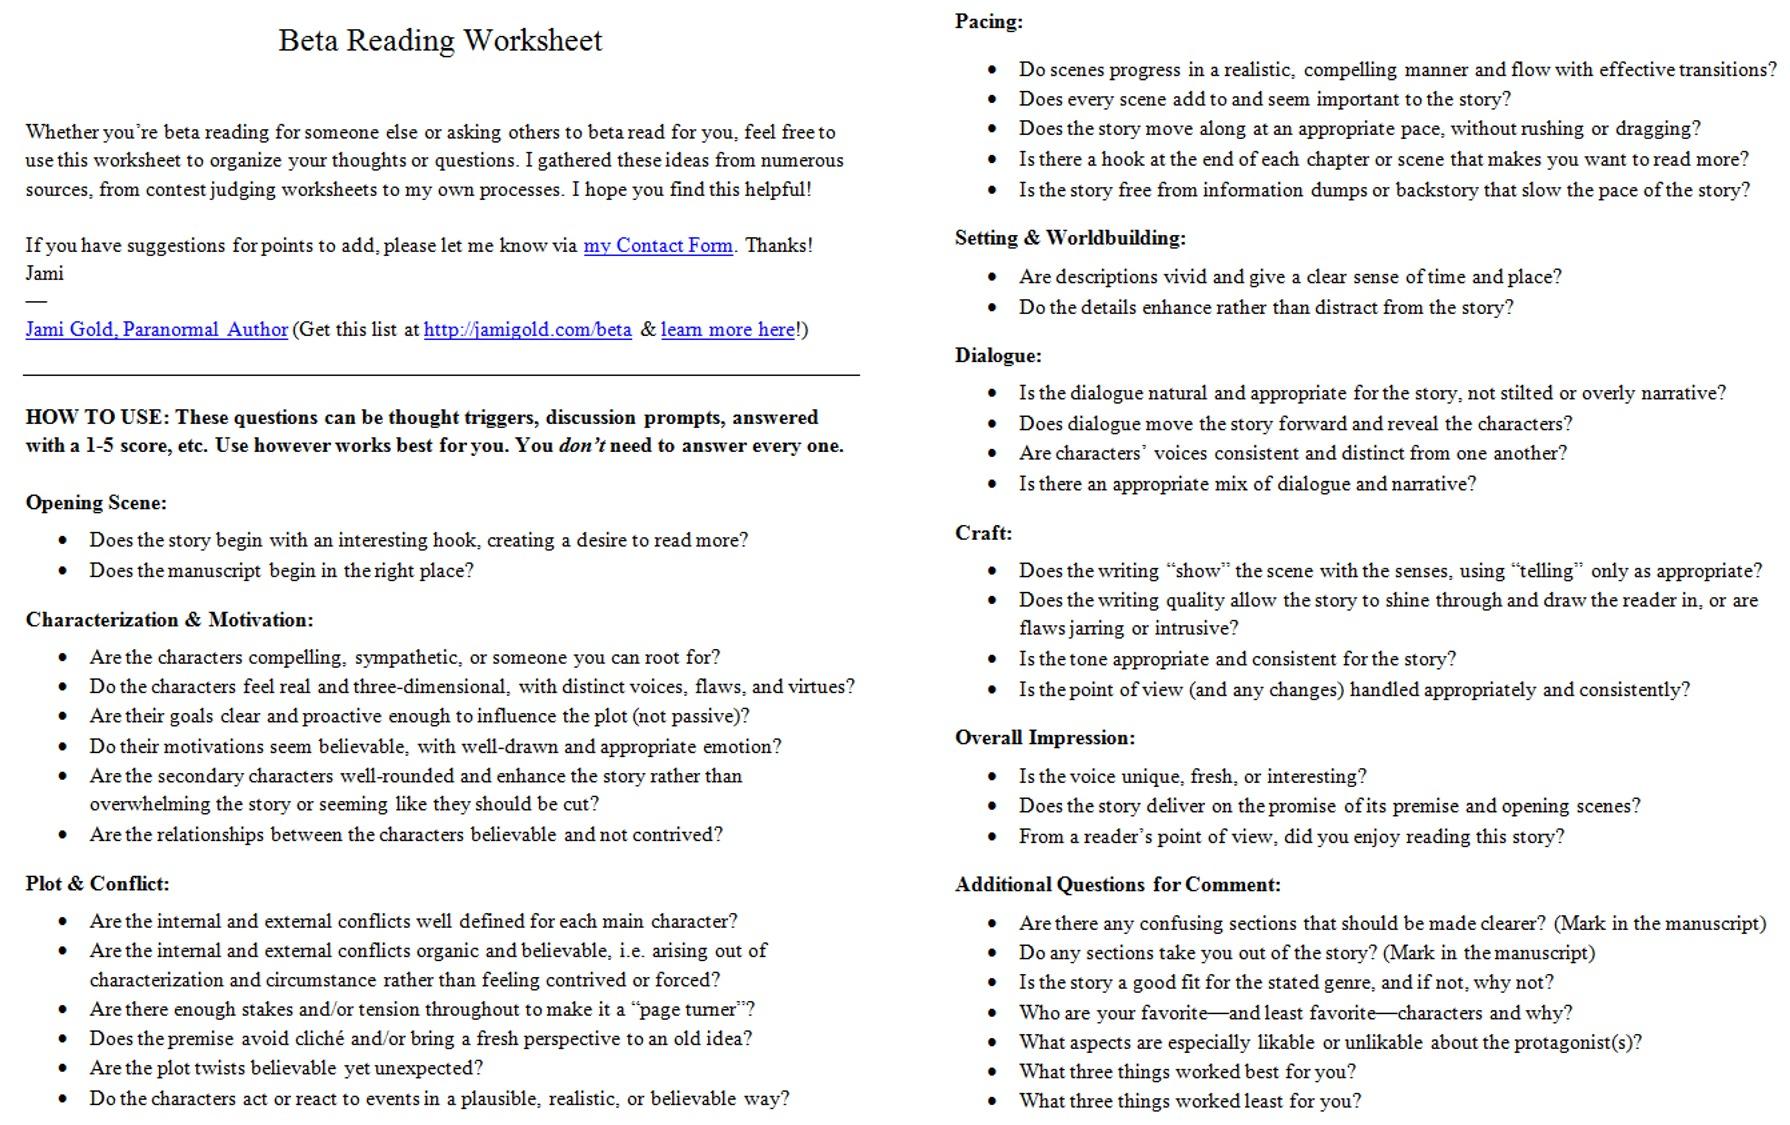 Weirdmailus  Mesmerizing Worksheets For Writers  Jami Gold Paranormal Author With Licious Screen Shot Of The Twopage Beta Reading Worksheet With Archaic Grade  Worksheets Printable Also Worksheets On Conjunctions For Grade  In Addition Number Fact Worksheets And New York Worksheets As Well As Fill In The Blanks With A An The Worksheets Additionally Worksheet For K From Jamigoldcom With Weirdmailus  Licious Worksheets For Writers  Jami Gold Paranormal Author With Archaic Screen Shot Of The Twopage Beta Reading Worksheet And Mesmerizing Grade  Worksheets Printable Also Worksheets On Conjunctions For Grade  In Addition Number Fact Worksheets From Jamigoldcom